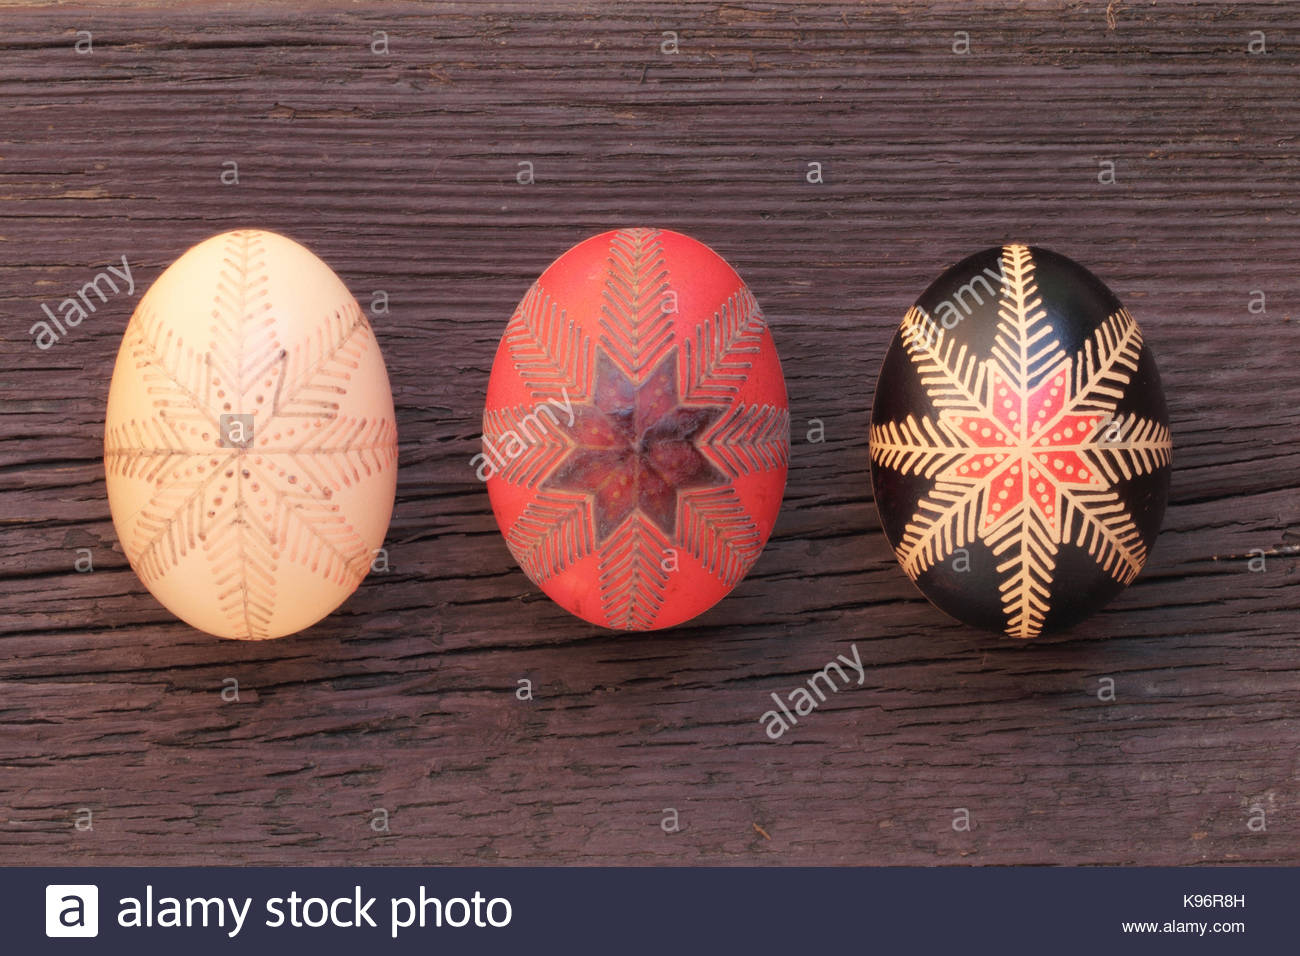 Phases of wax-resist painting method on chicken egg with traditional Hungarian folk design. - Stock Image